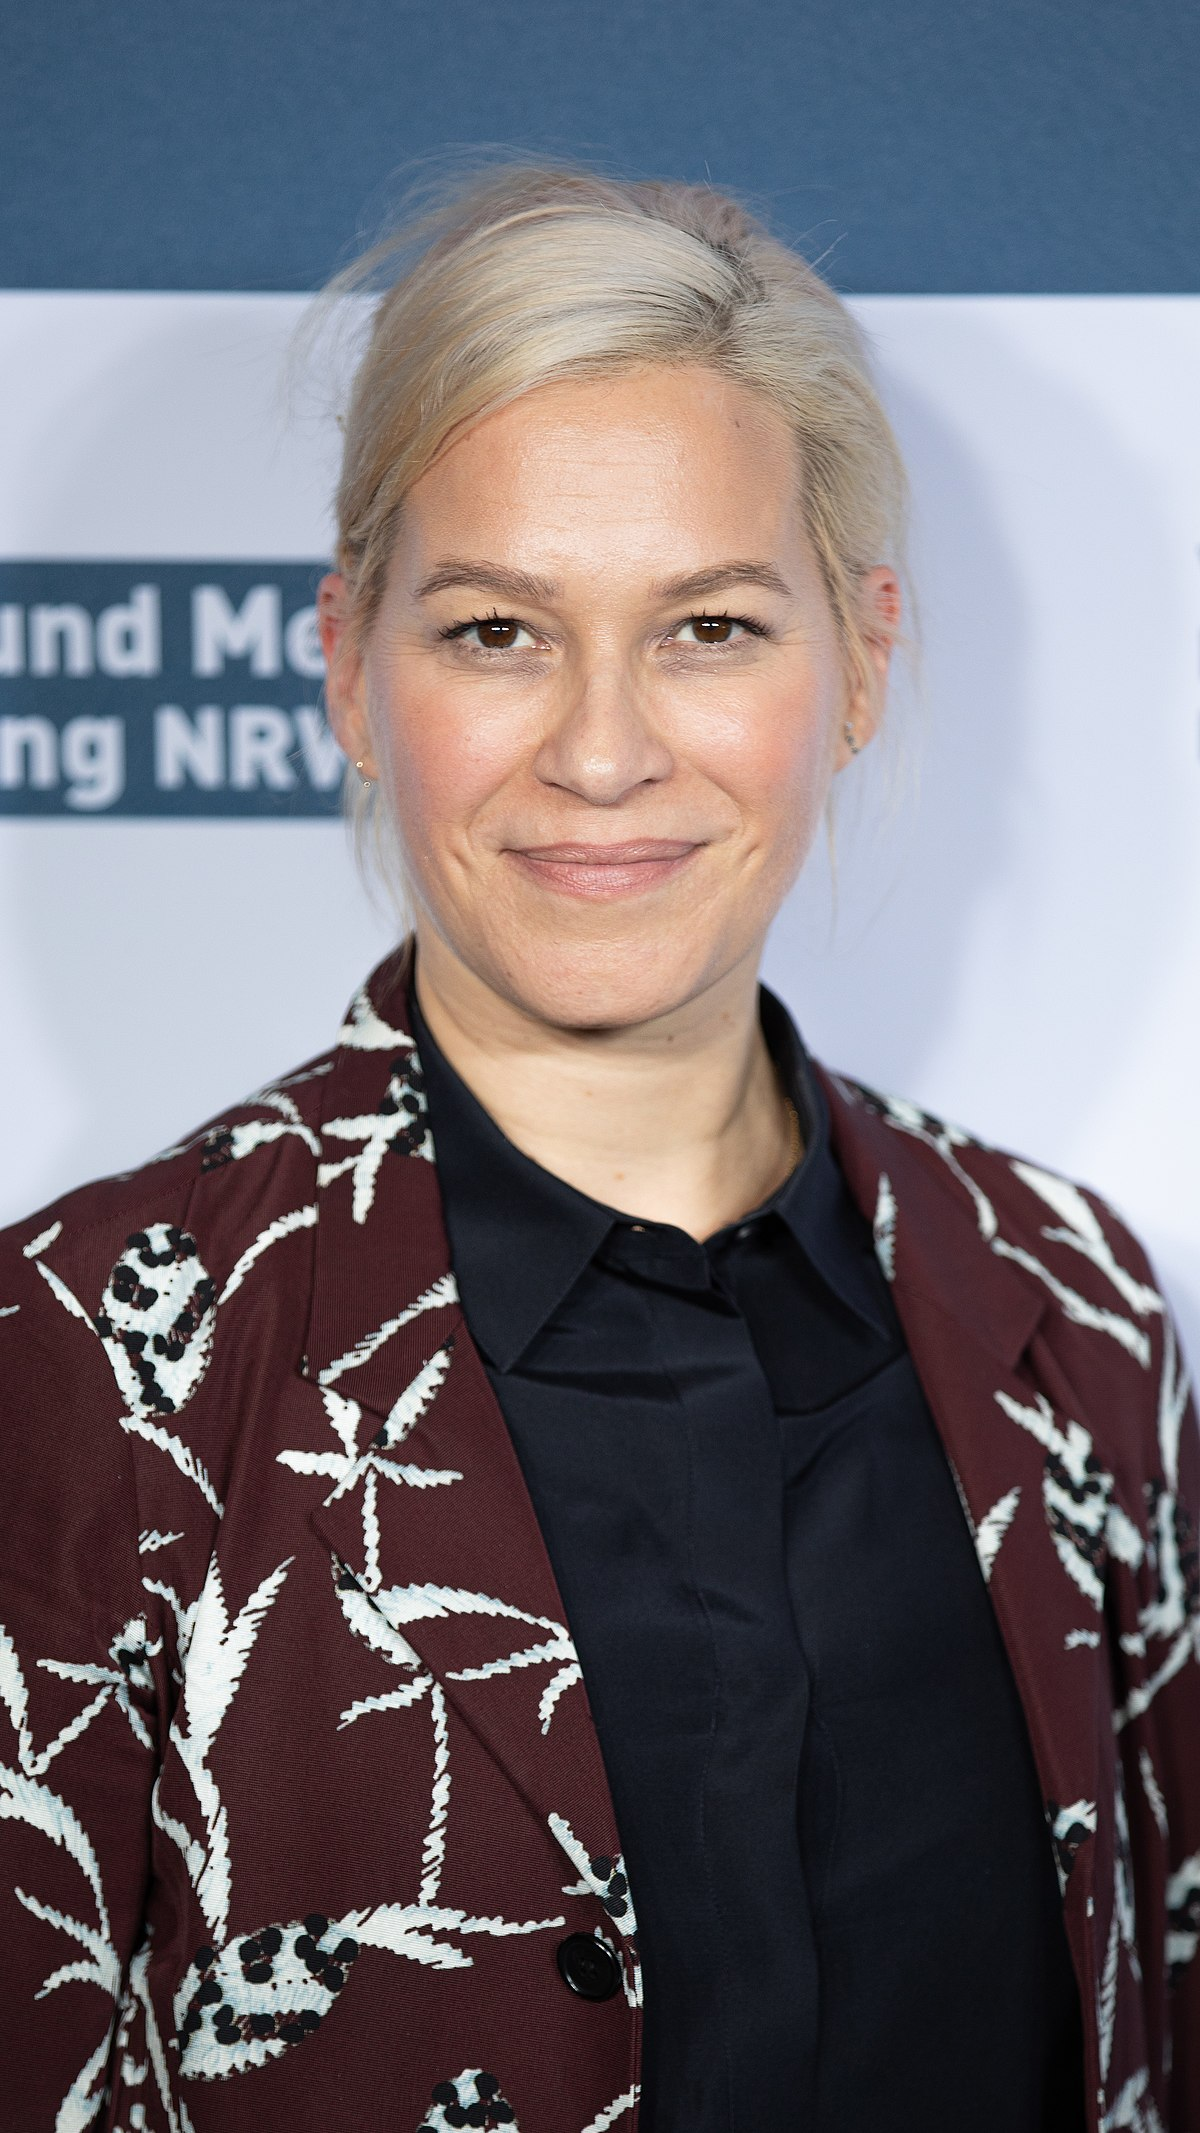 Franka Potente Phone number, Email Id, Fanmail, Instagram, Tiktok, and Contact Details